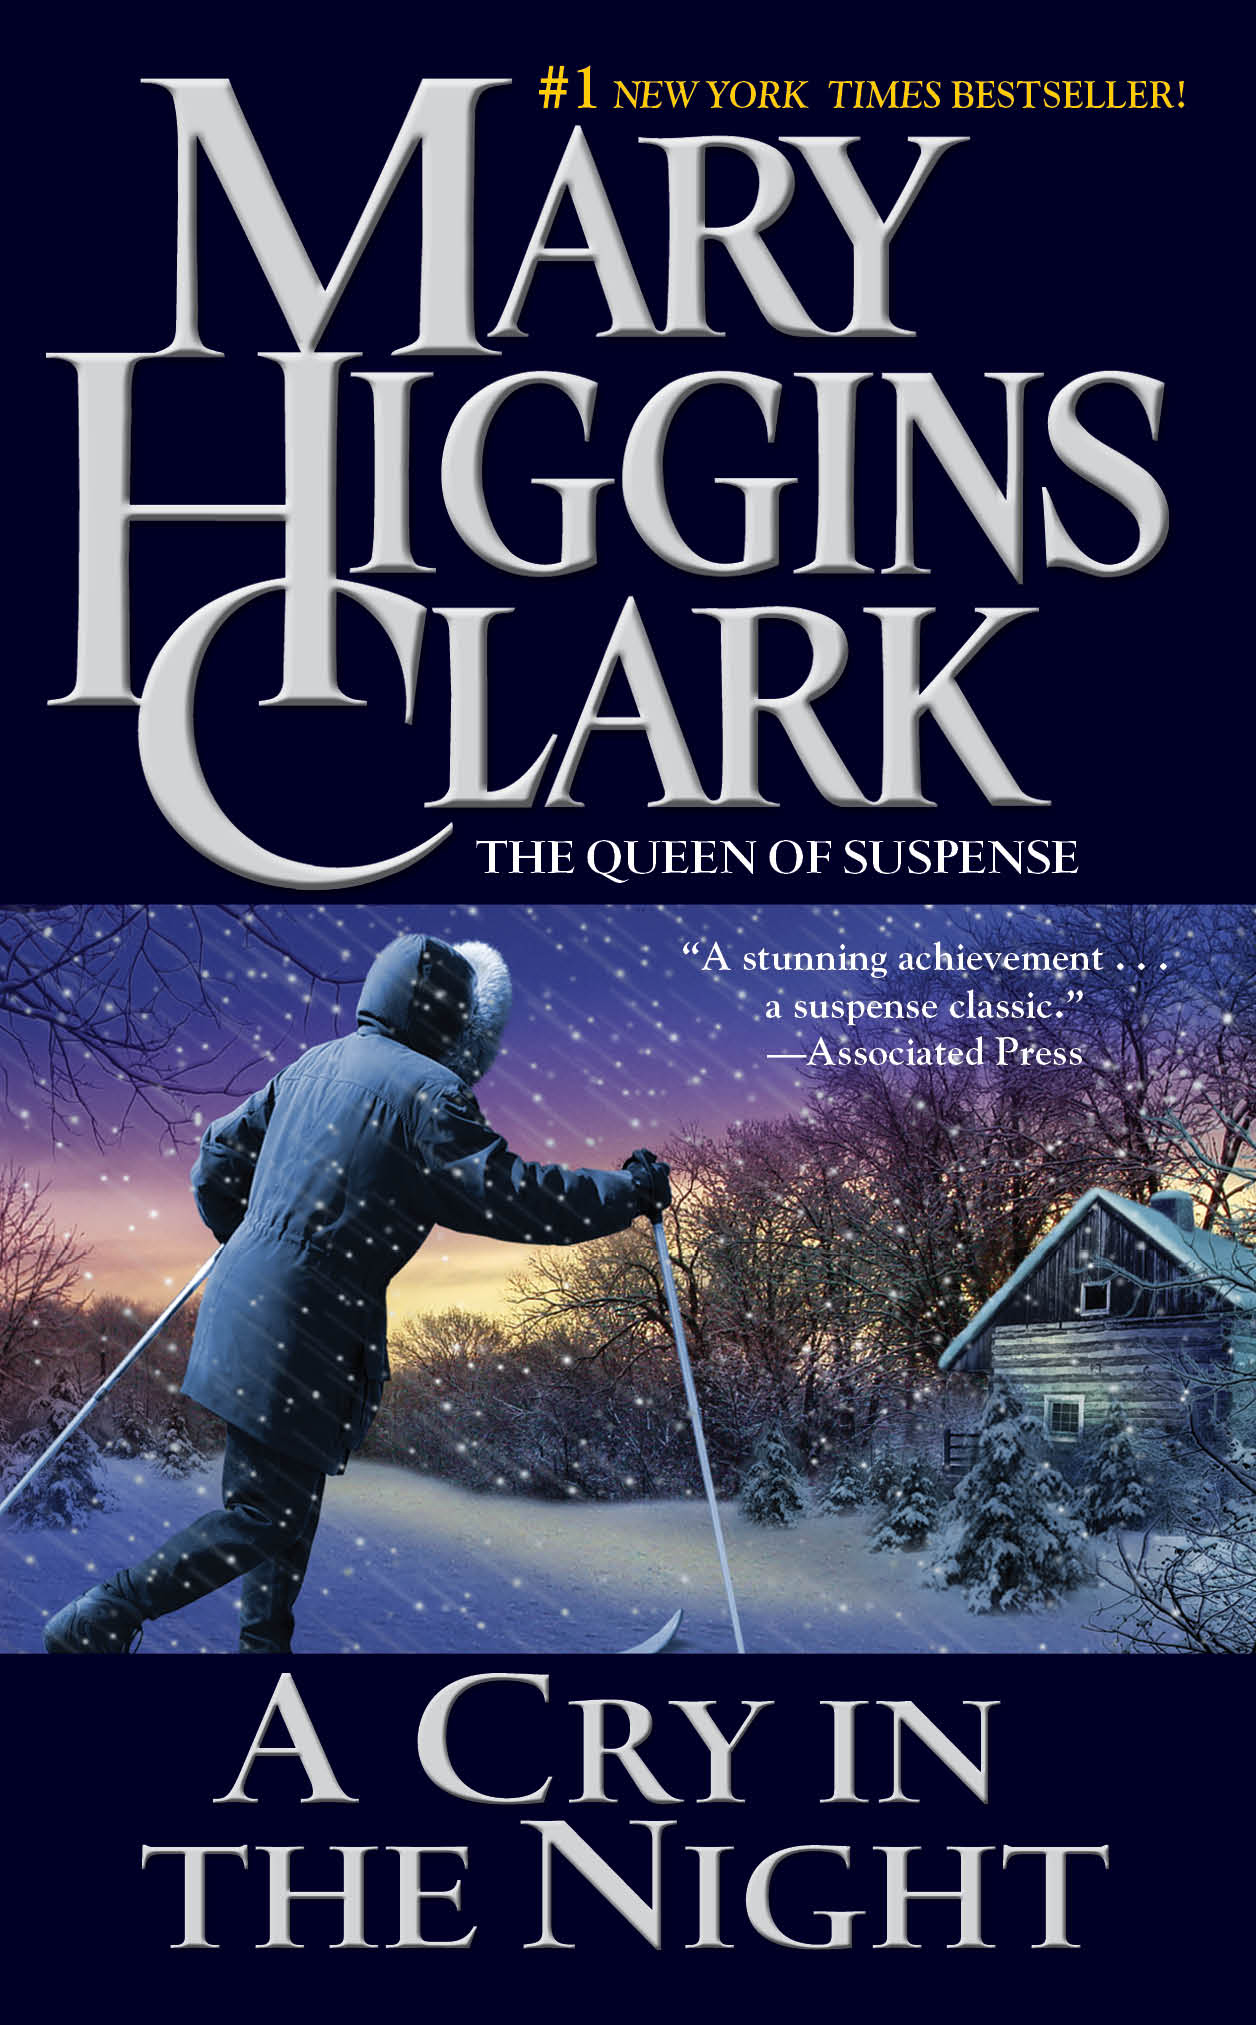 A Cry In The Night | Book by Mary Higgins Clark | Official